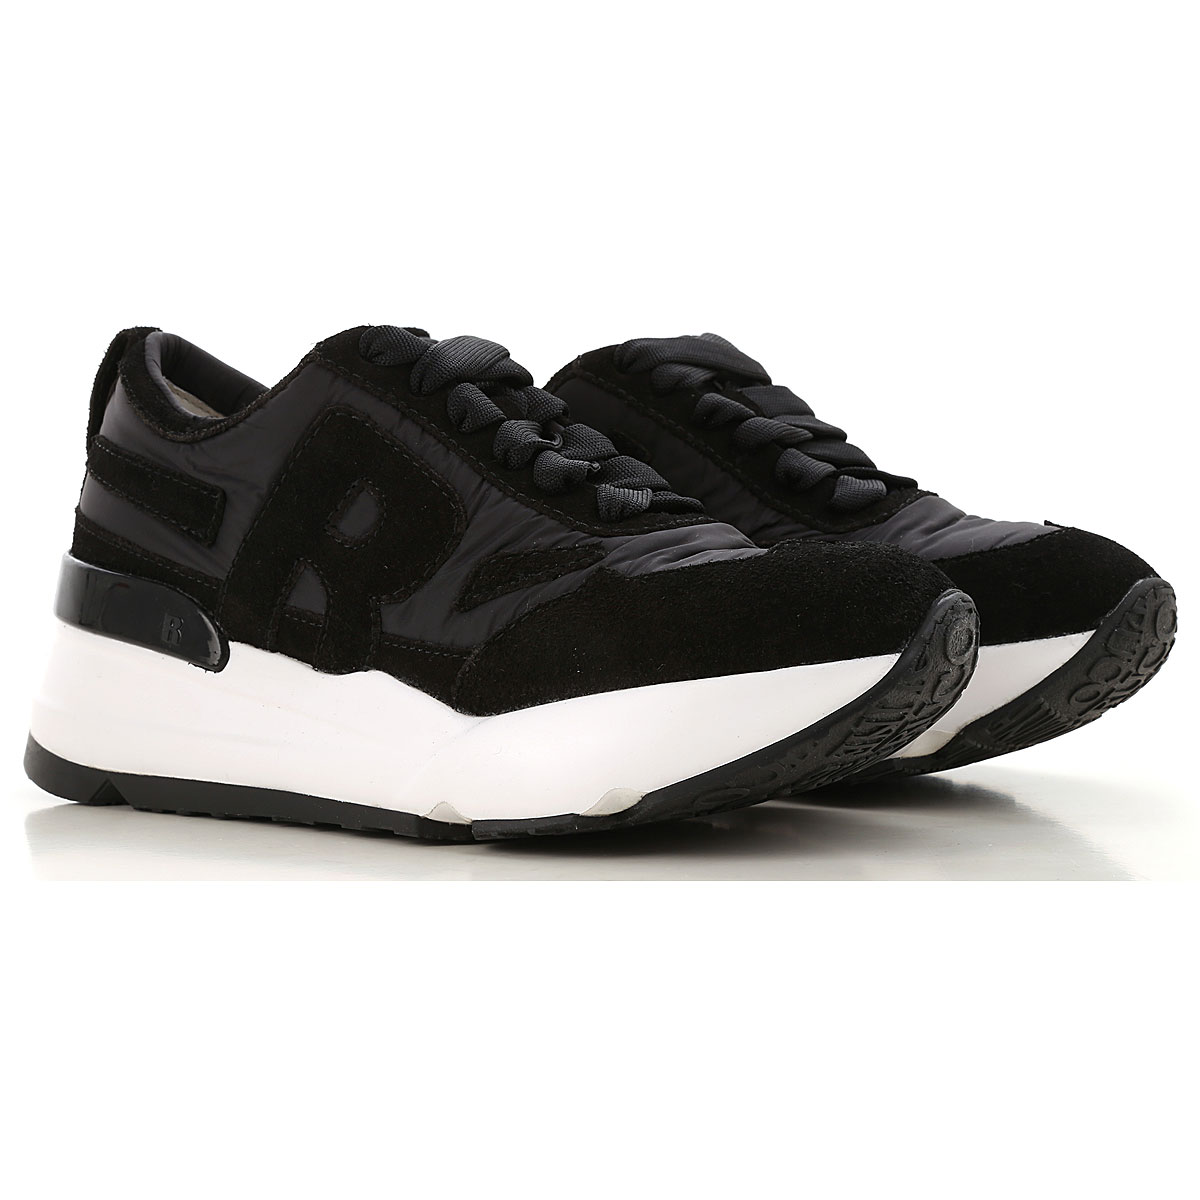 Image of Ruco Line Sneakers for Women, Black, Nylon, 2017, 10 6 7 8